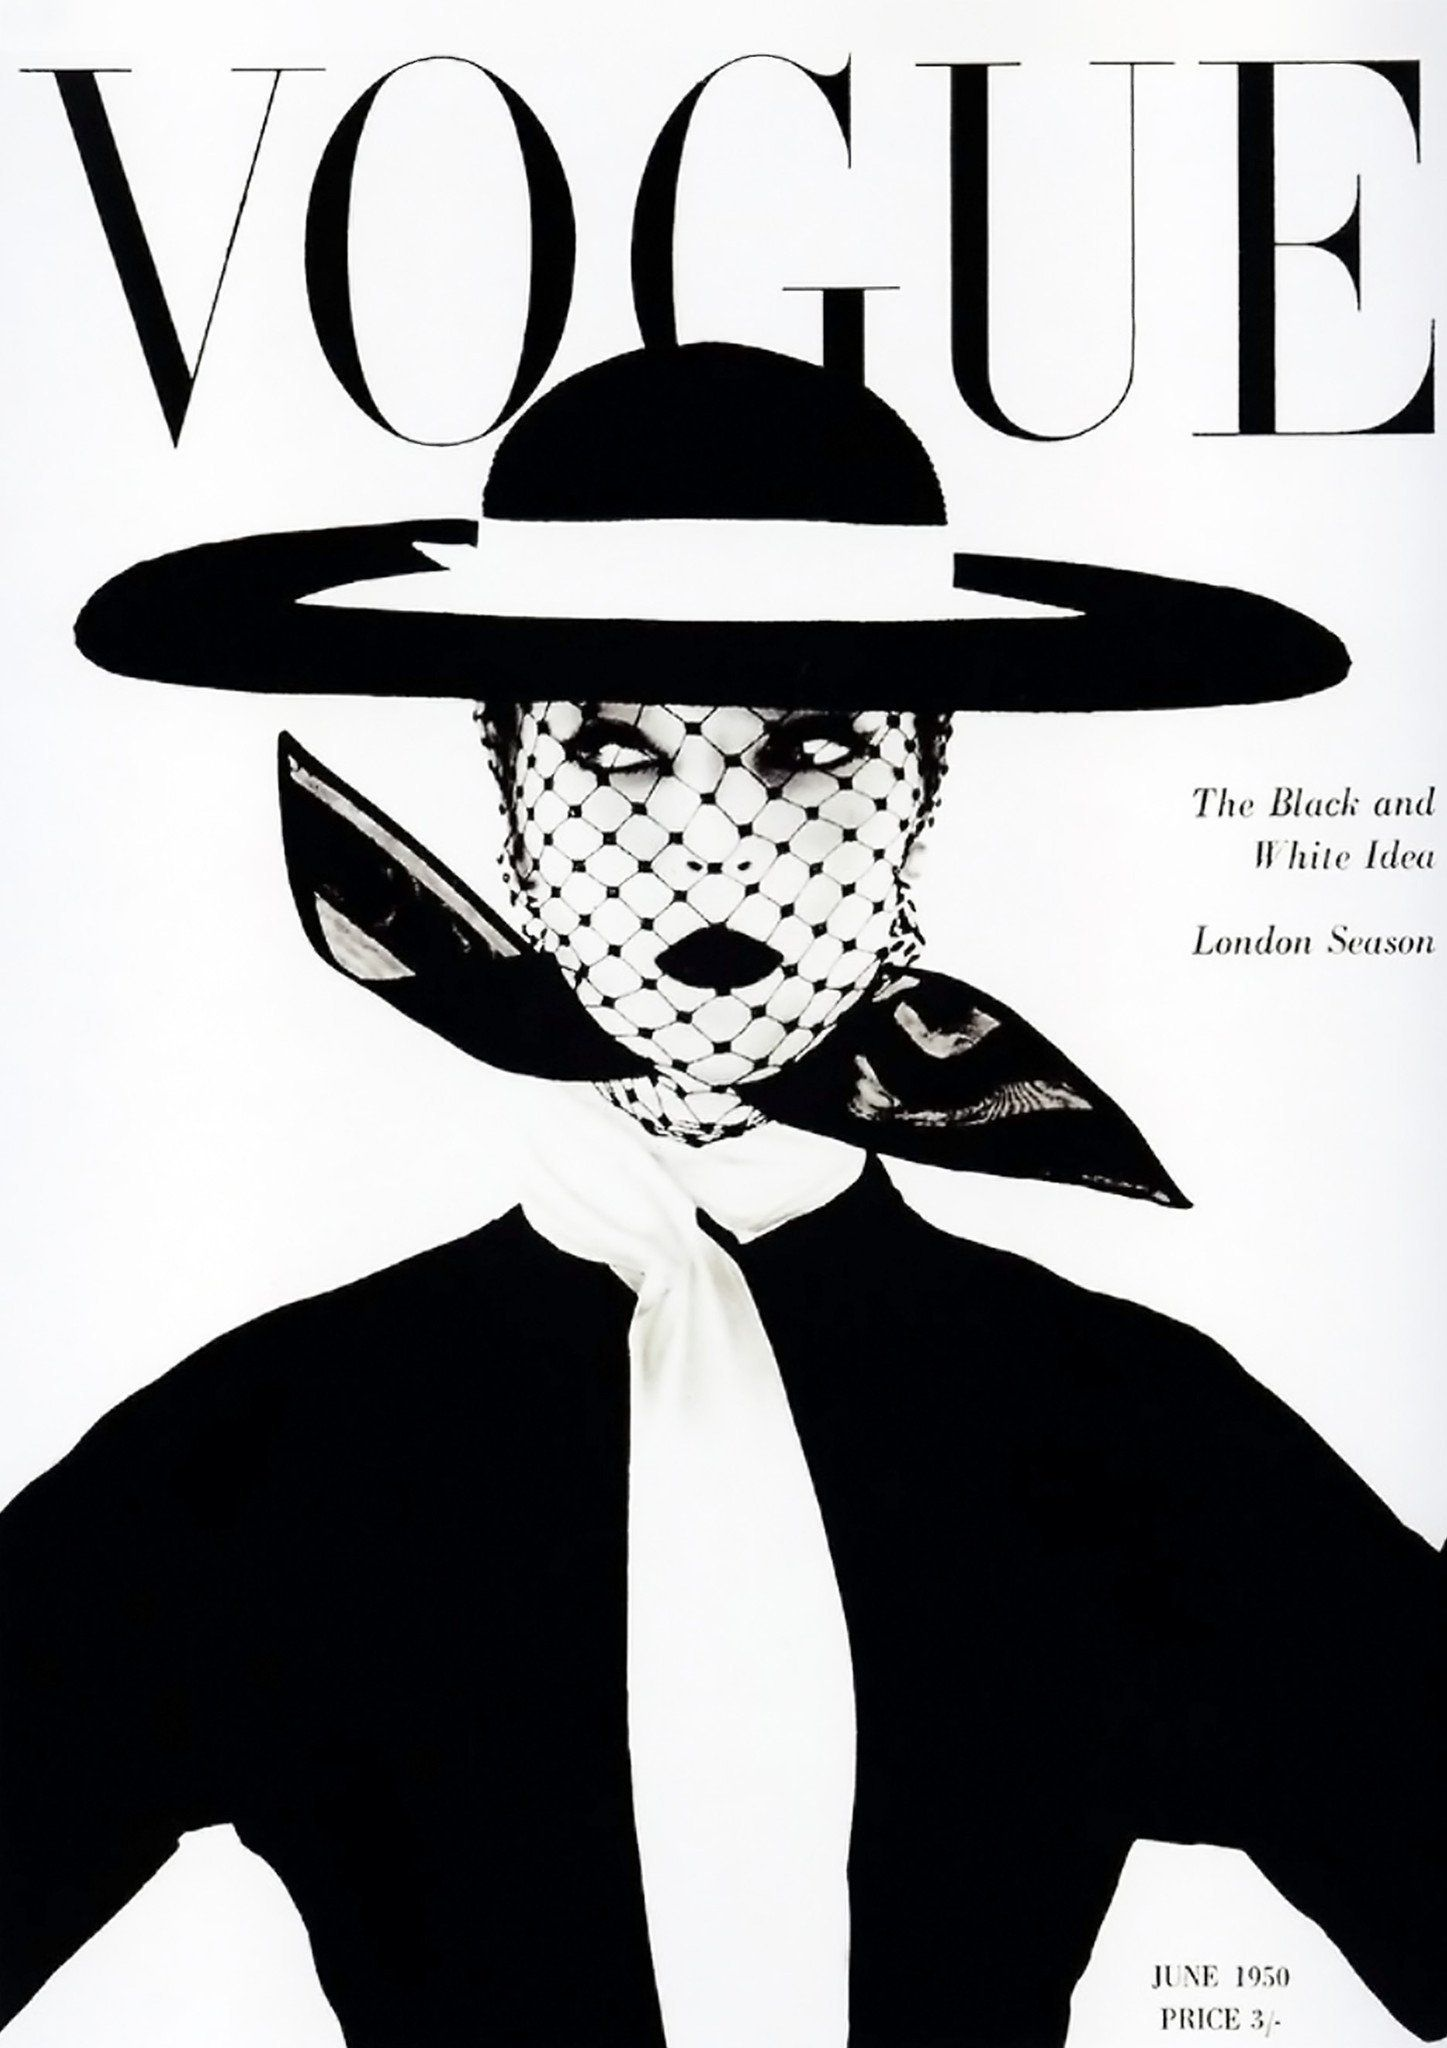 Vogue Magazine Cover Vintage Black And White Fashion Art Vogue Magazine Covers Vintage Vogue Covers Vogue Covers